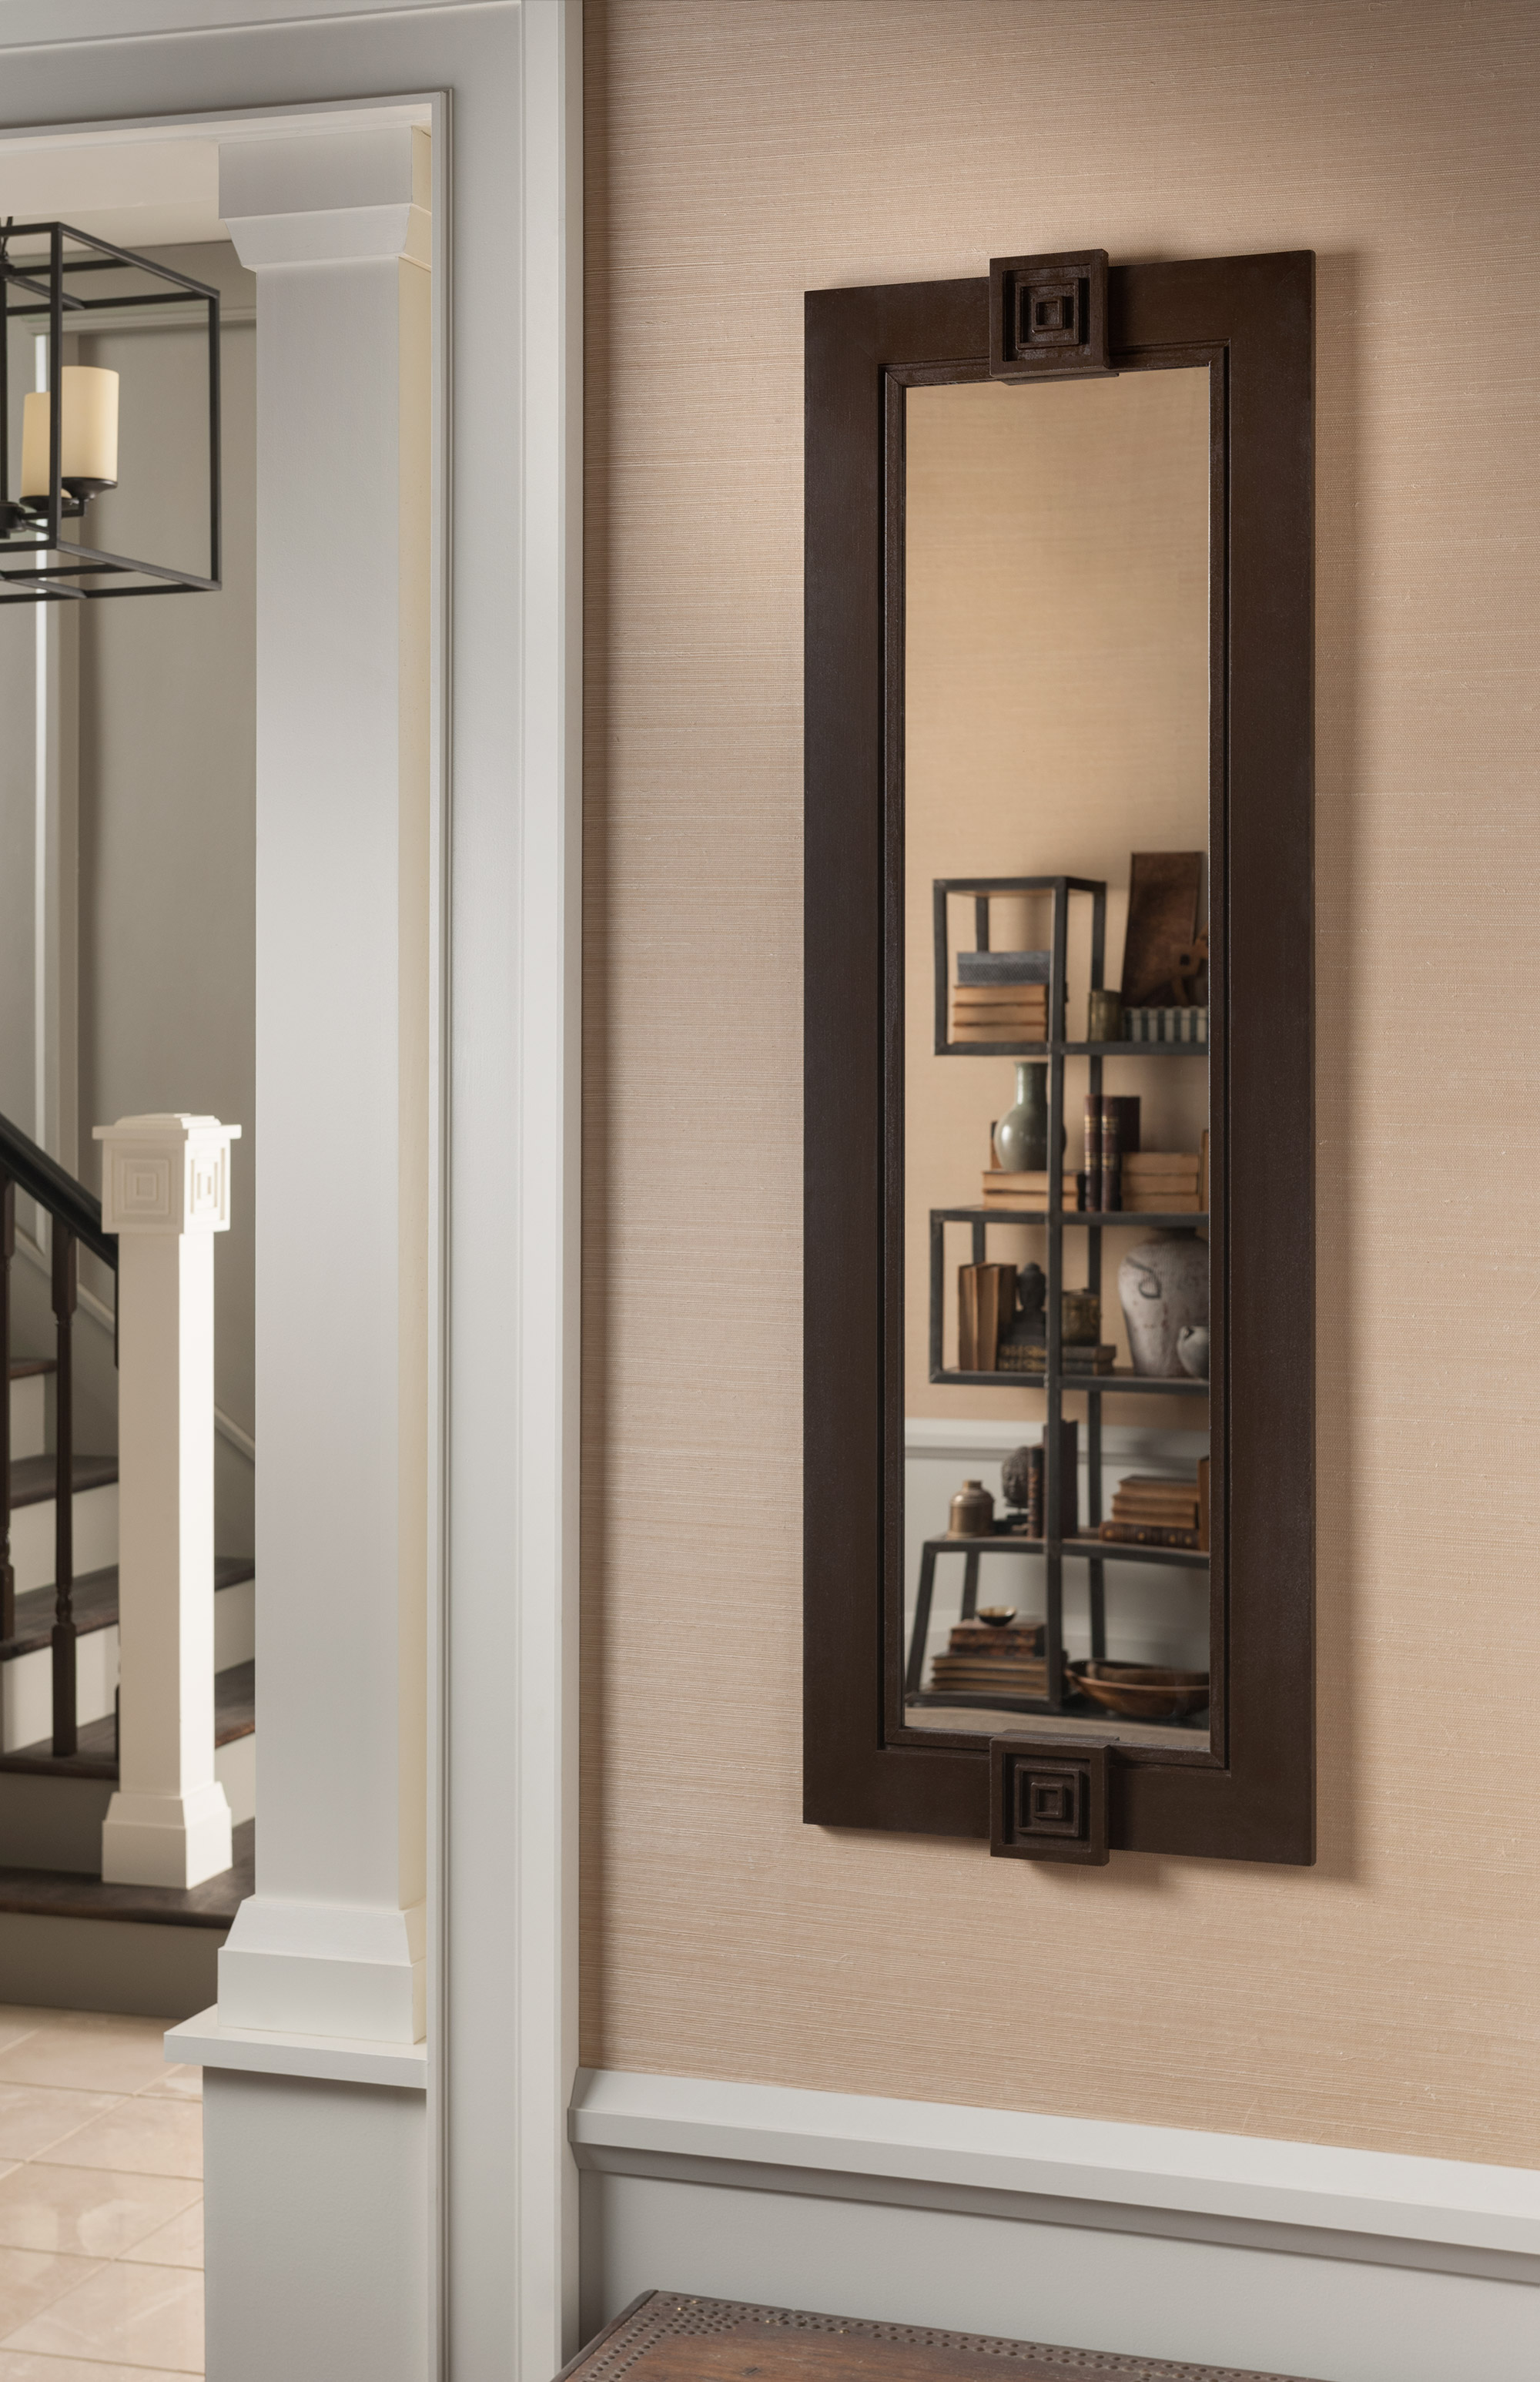 Frame a bathroom mirror with molding - Frame A Mirror With Casings And Ikons To Add An Asian Zen Feel To A Room